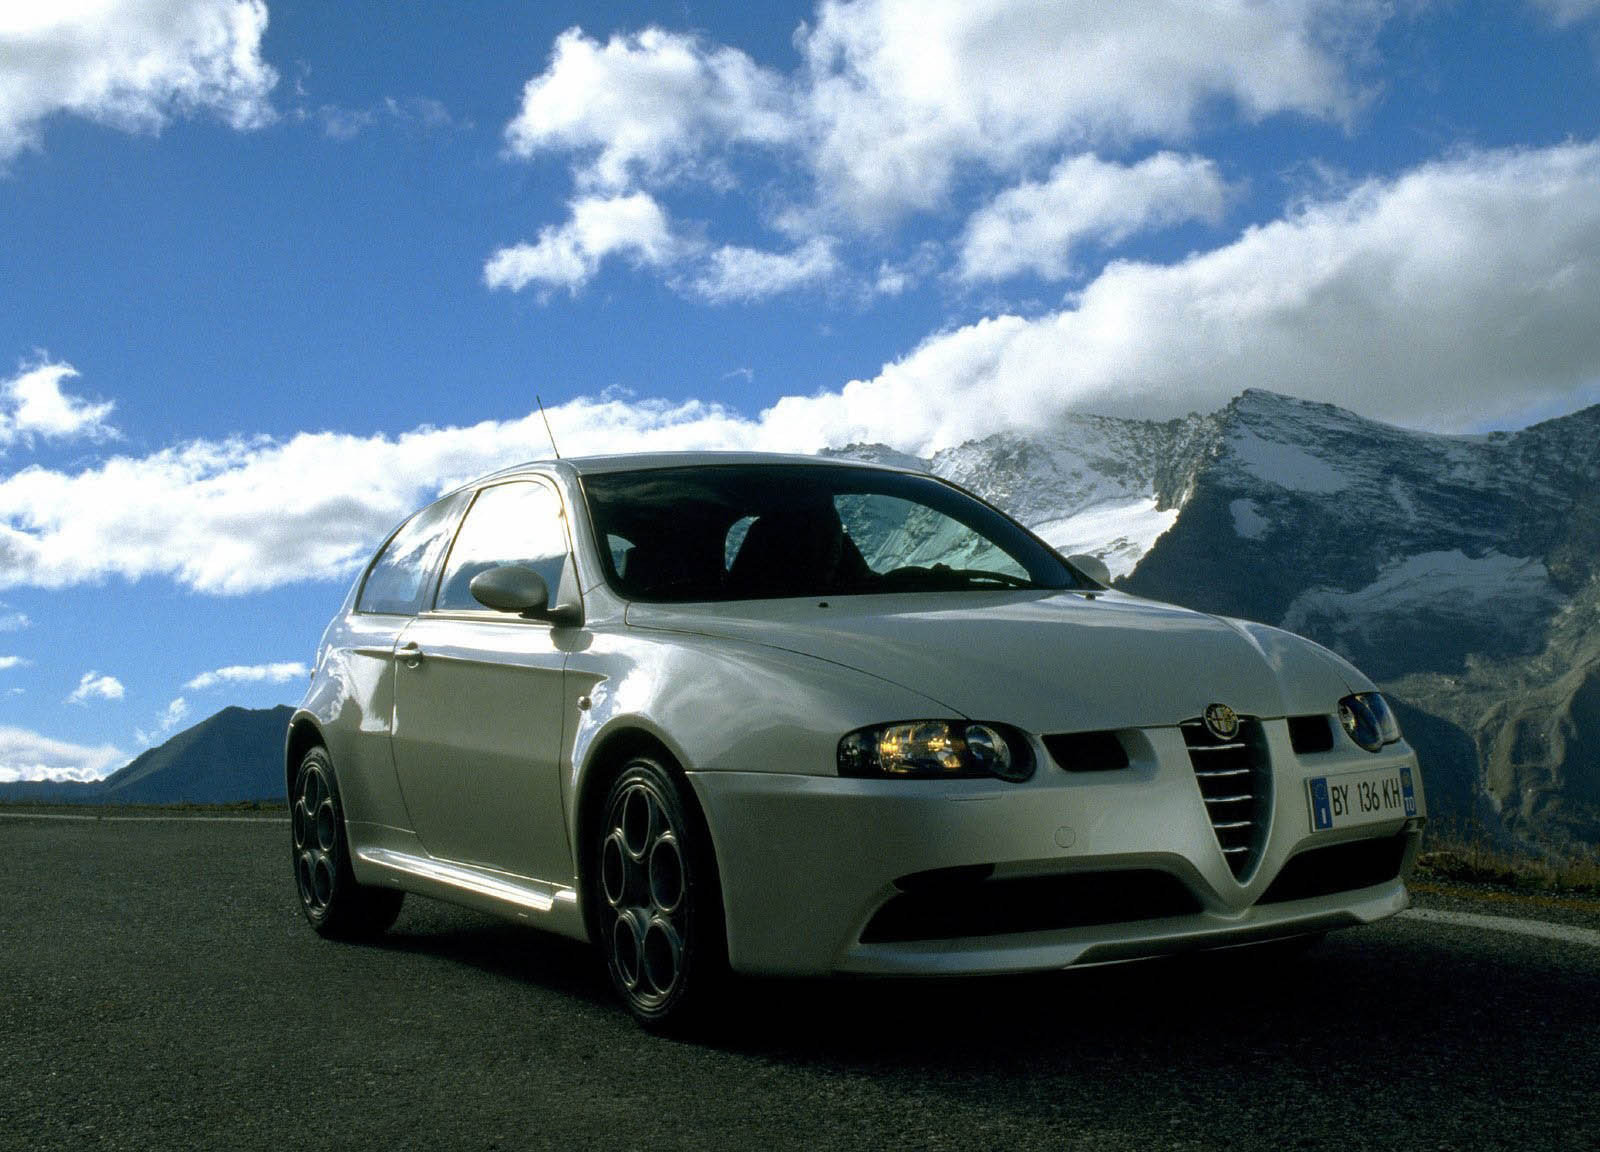 2000 alpha romeo 147 gta picture 250 car review top speed. Black Bedroom Furniture Sets. Home Design Ideas